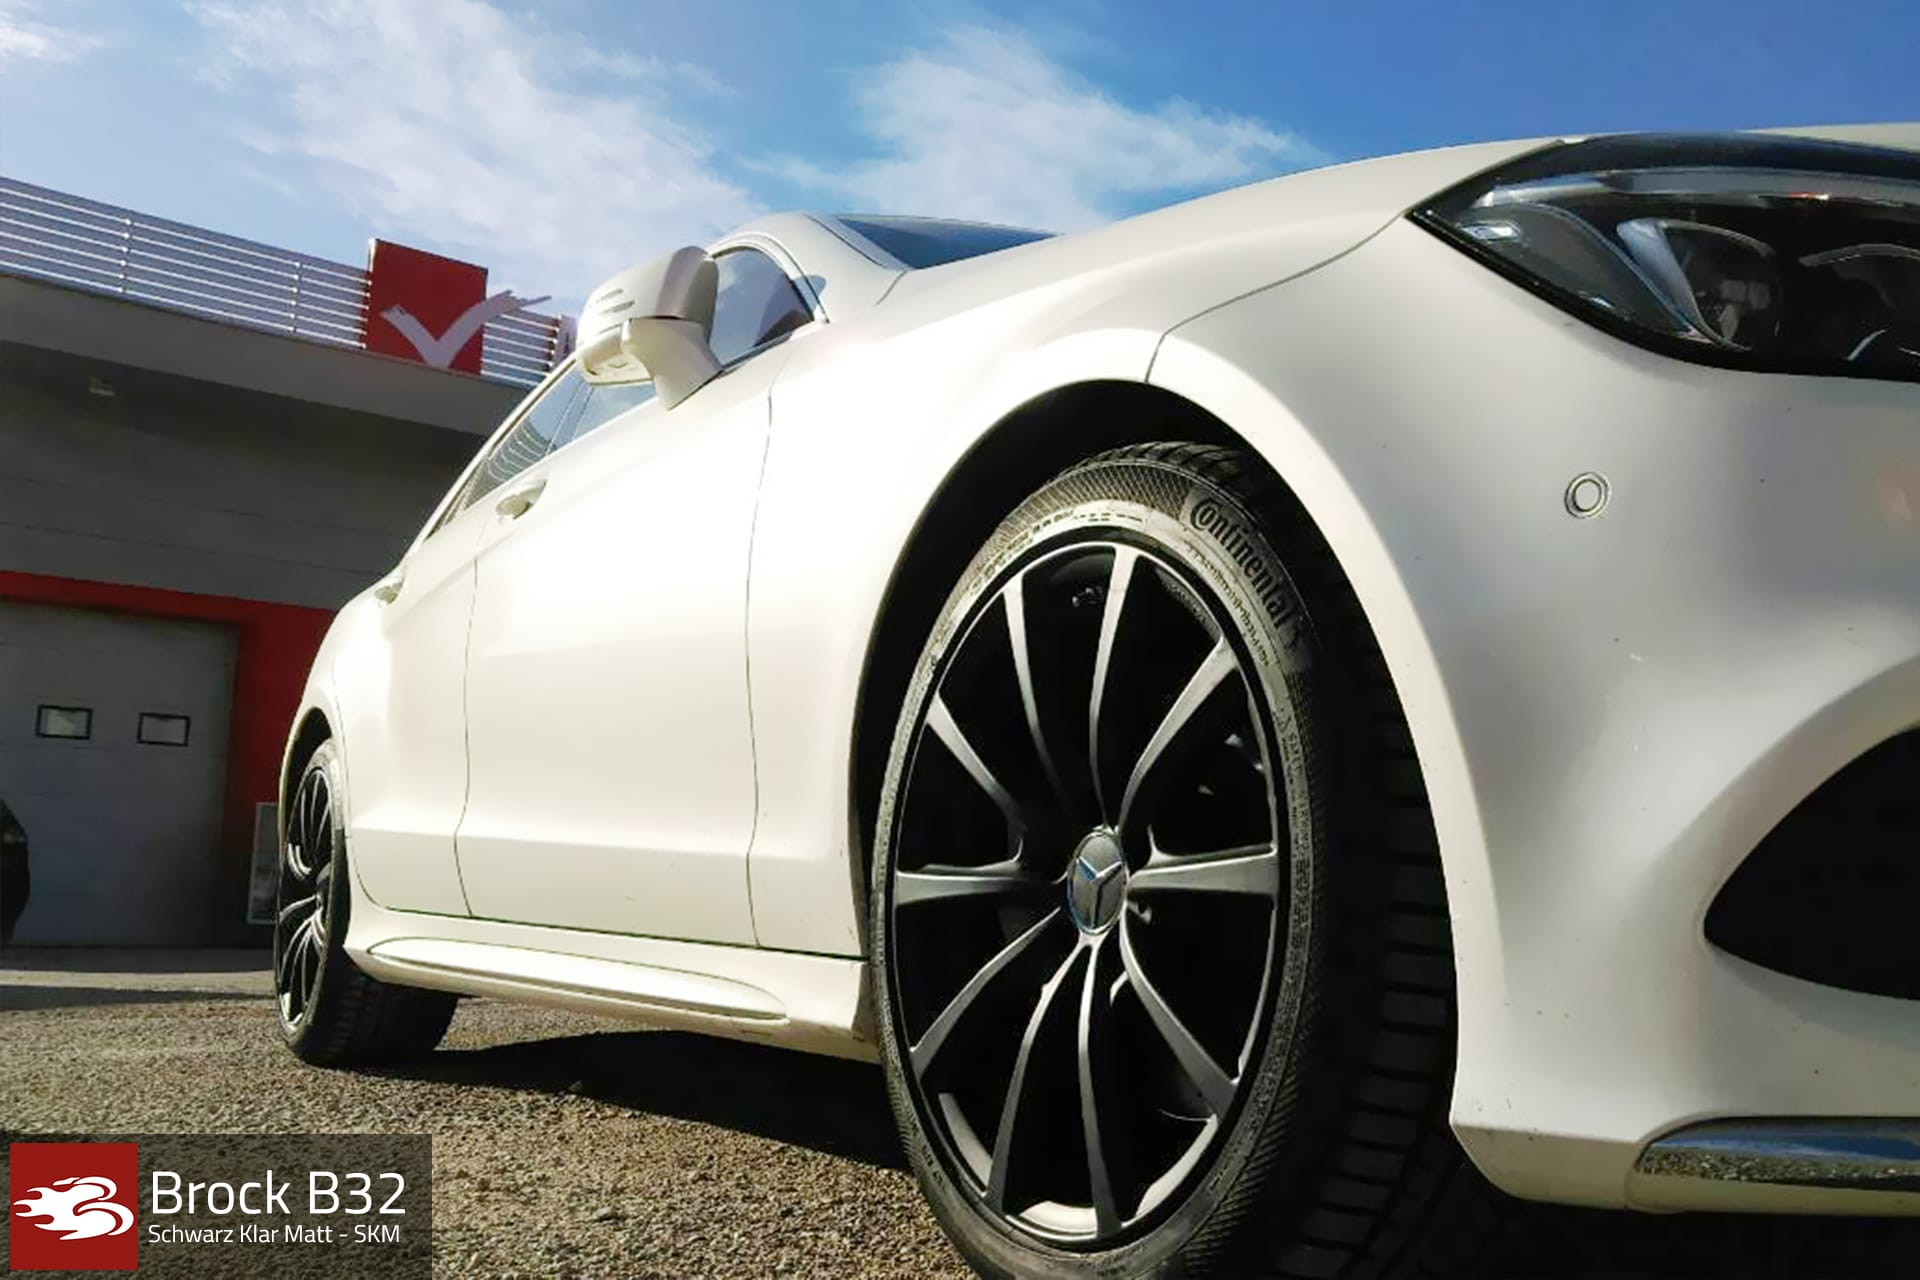 Bmw X6 Wheels Bmw X6 M 2016 Picture 170 1280x960 Bmw